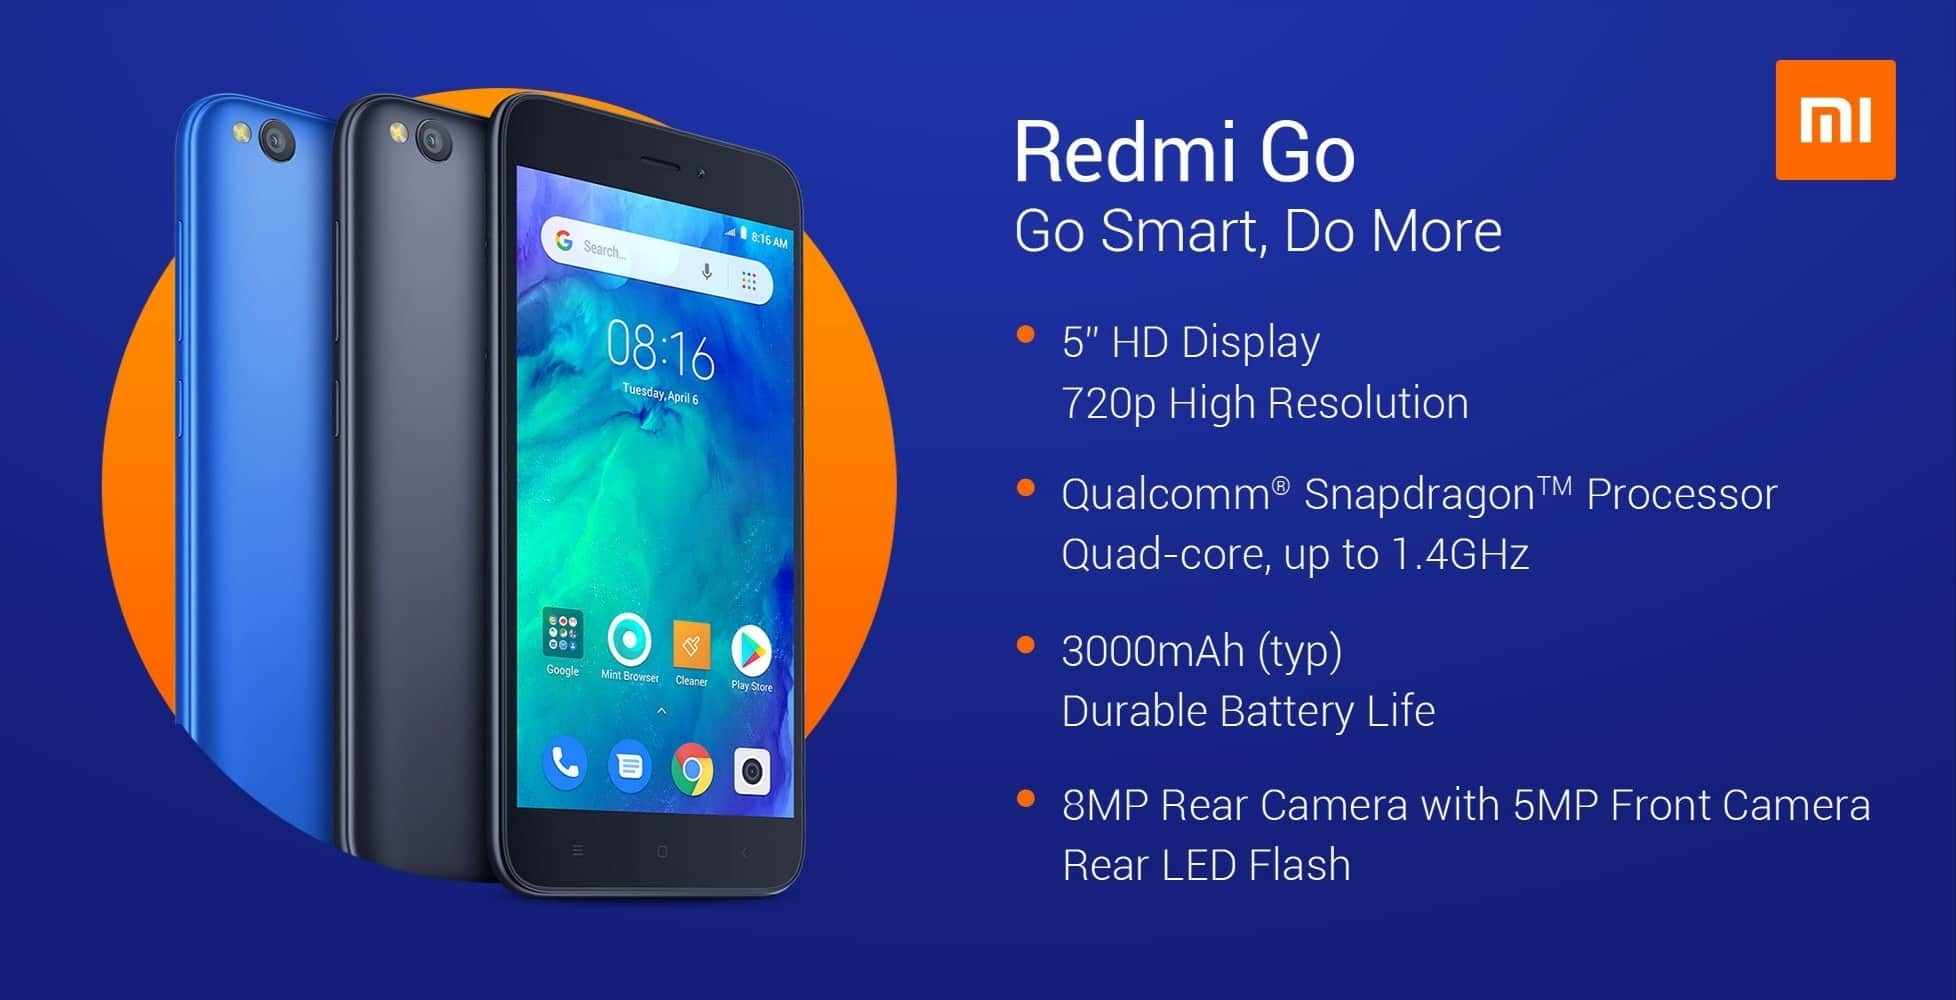 Redmi Go Specifications